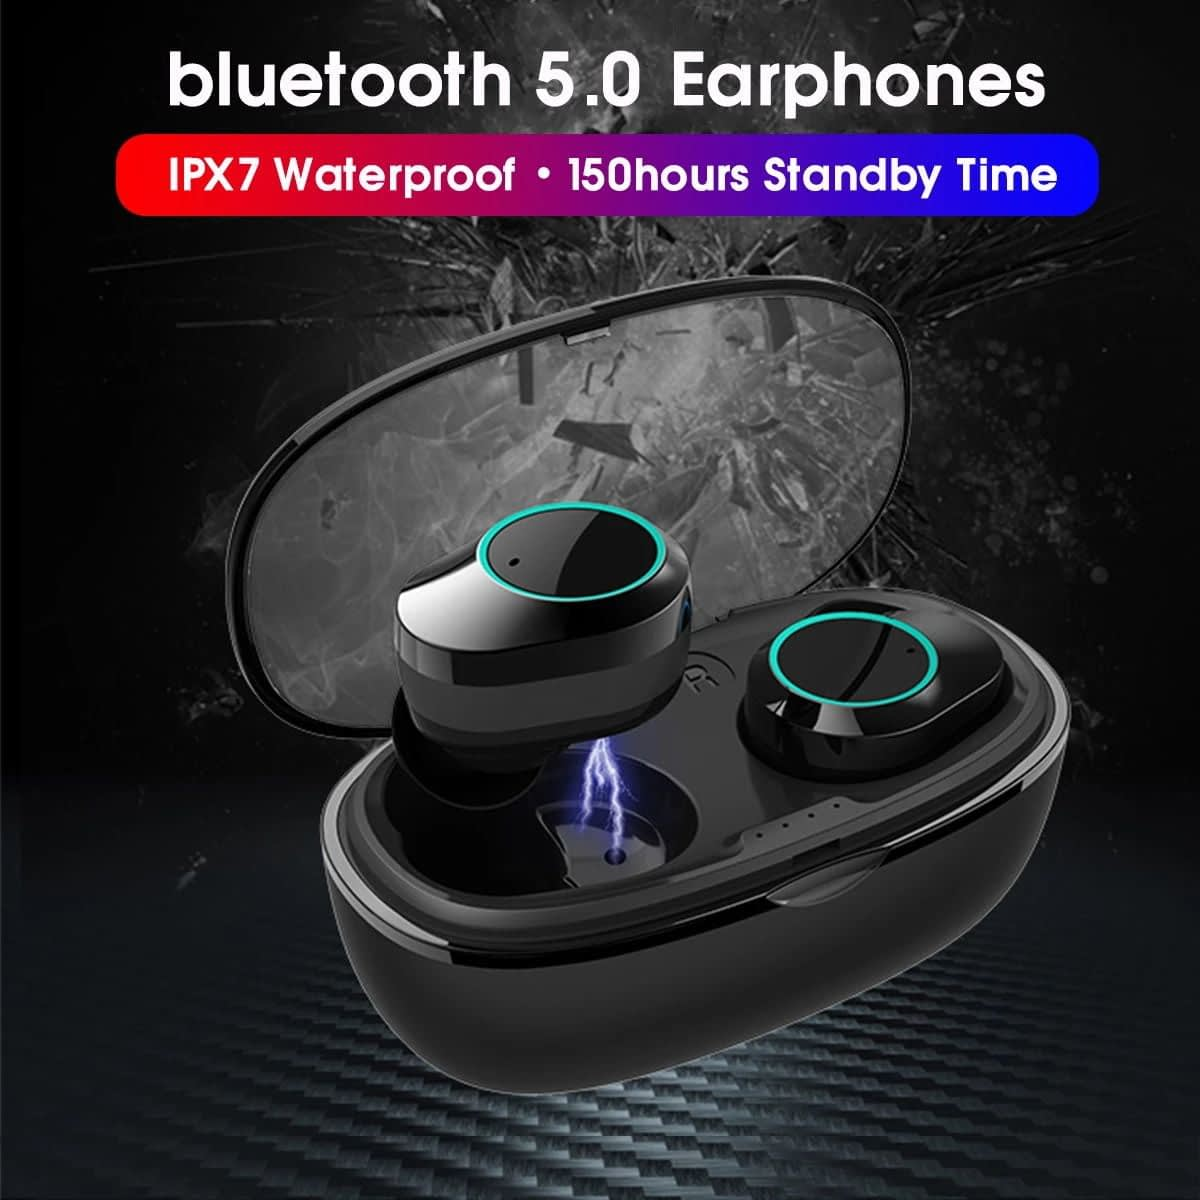 T2C TWS Bluetooth 5.0 earphone hifi stereo type-c charging case wholesale china 1 (3)